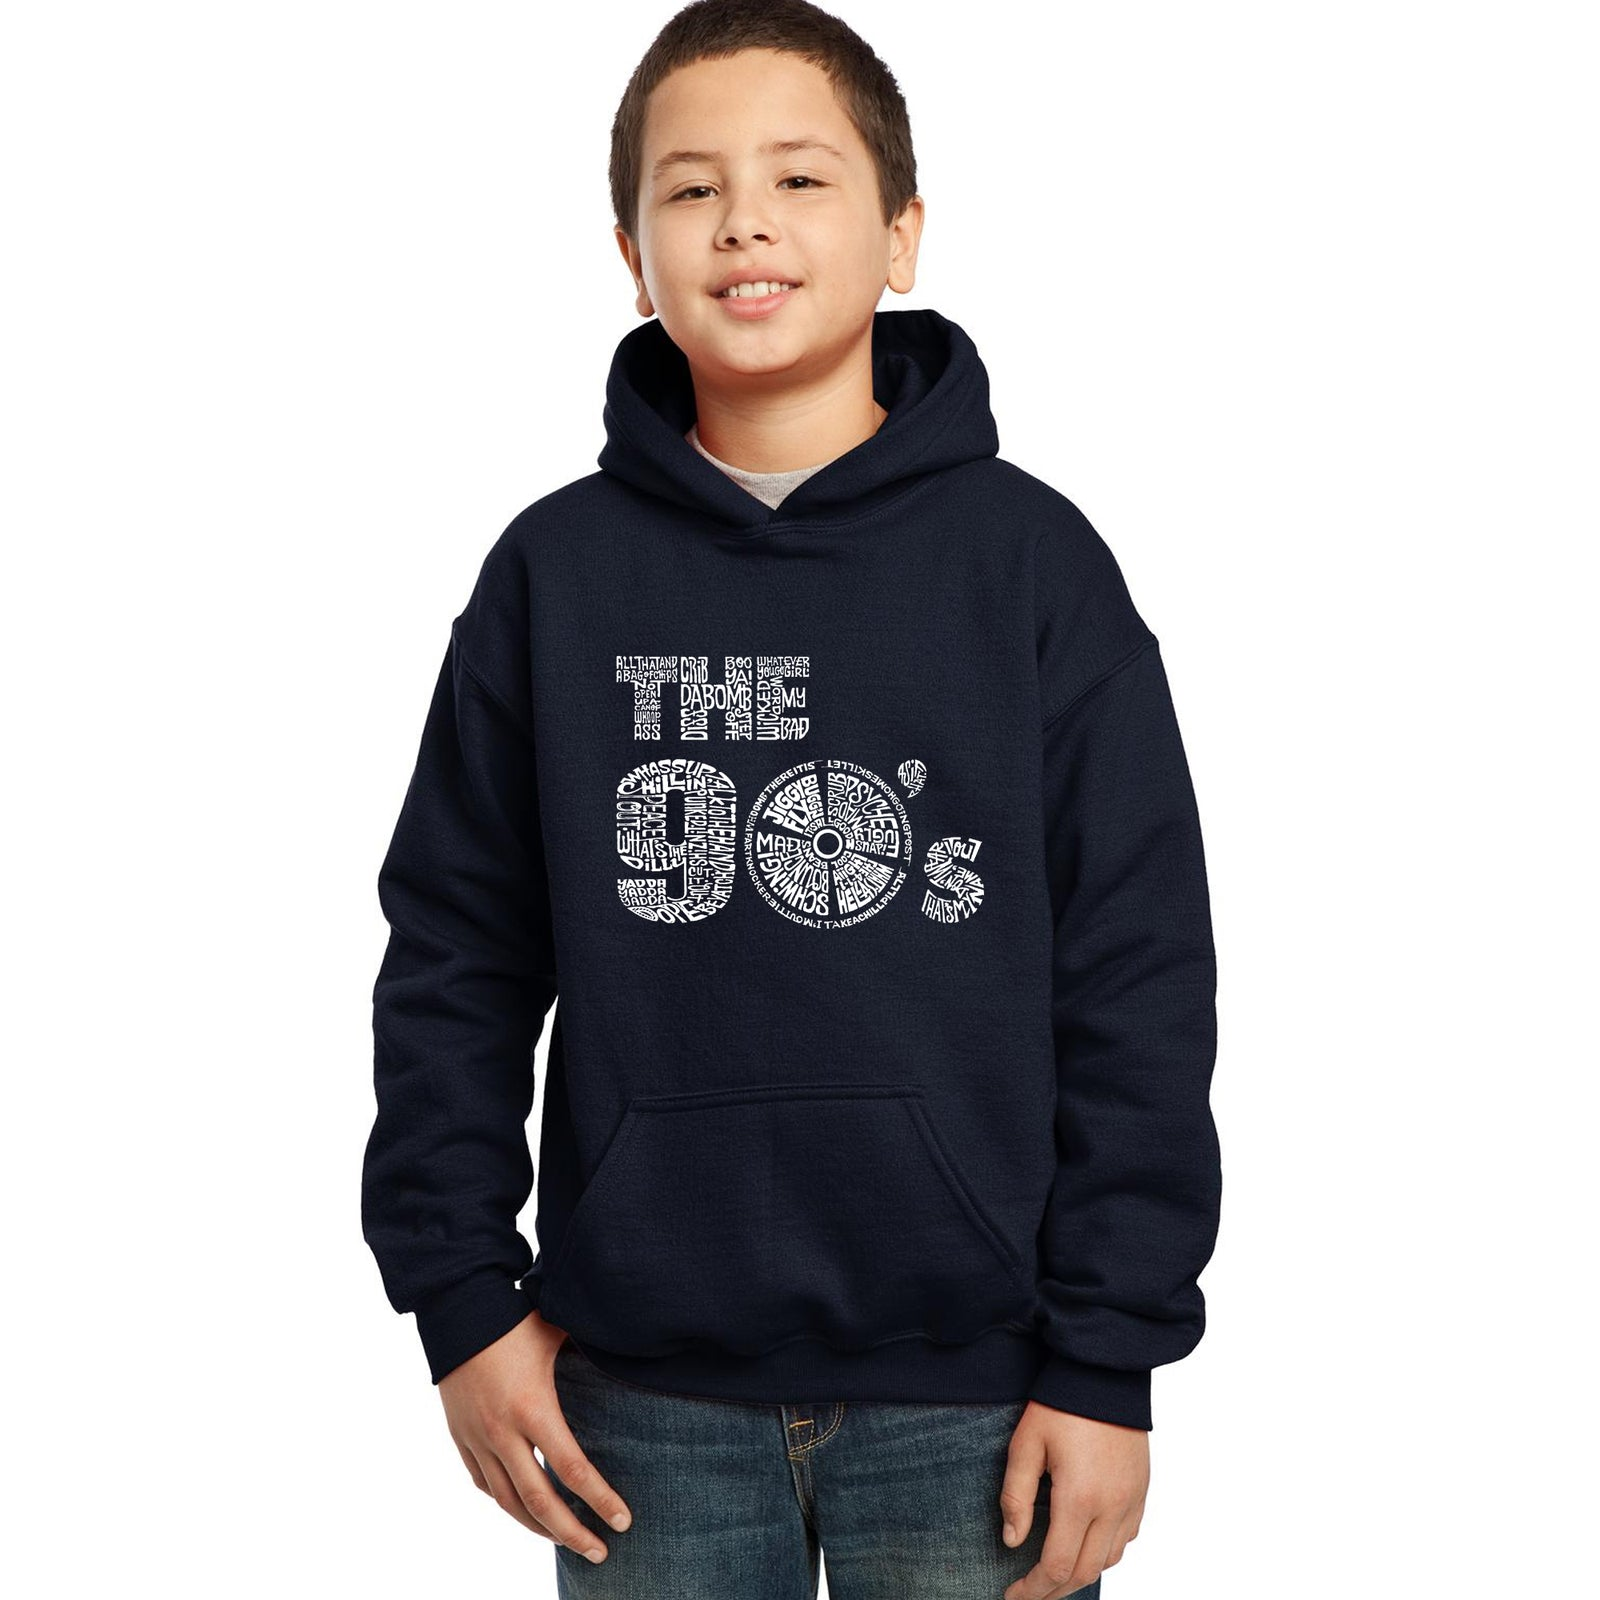 Boy's Word Art Hooded Sweatshirt - 90S